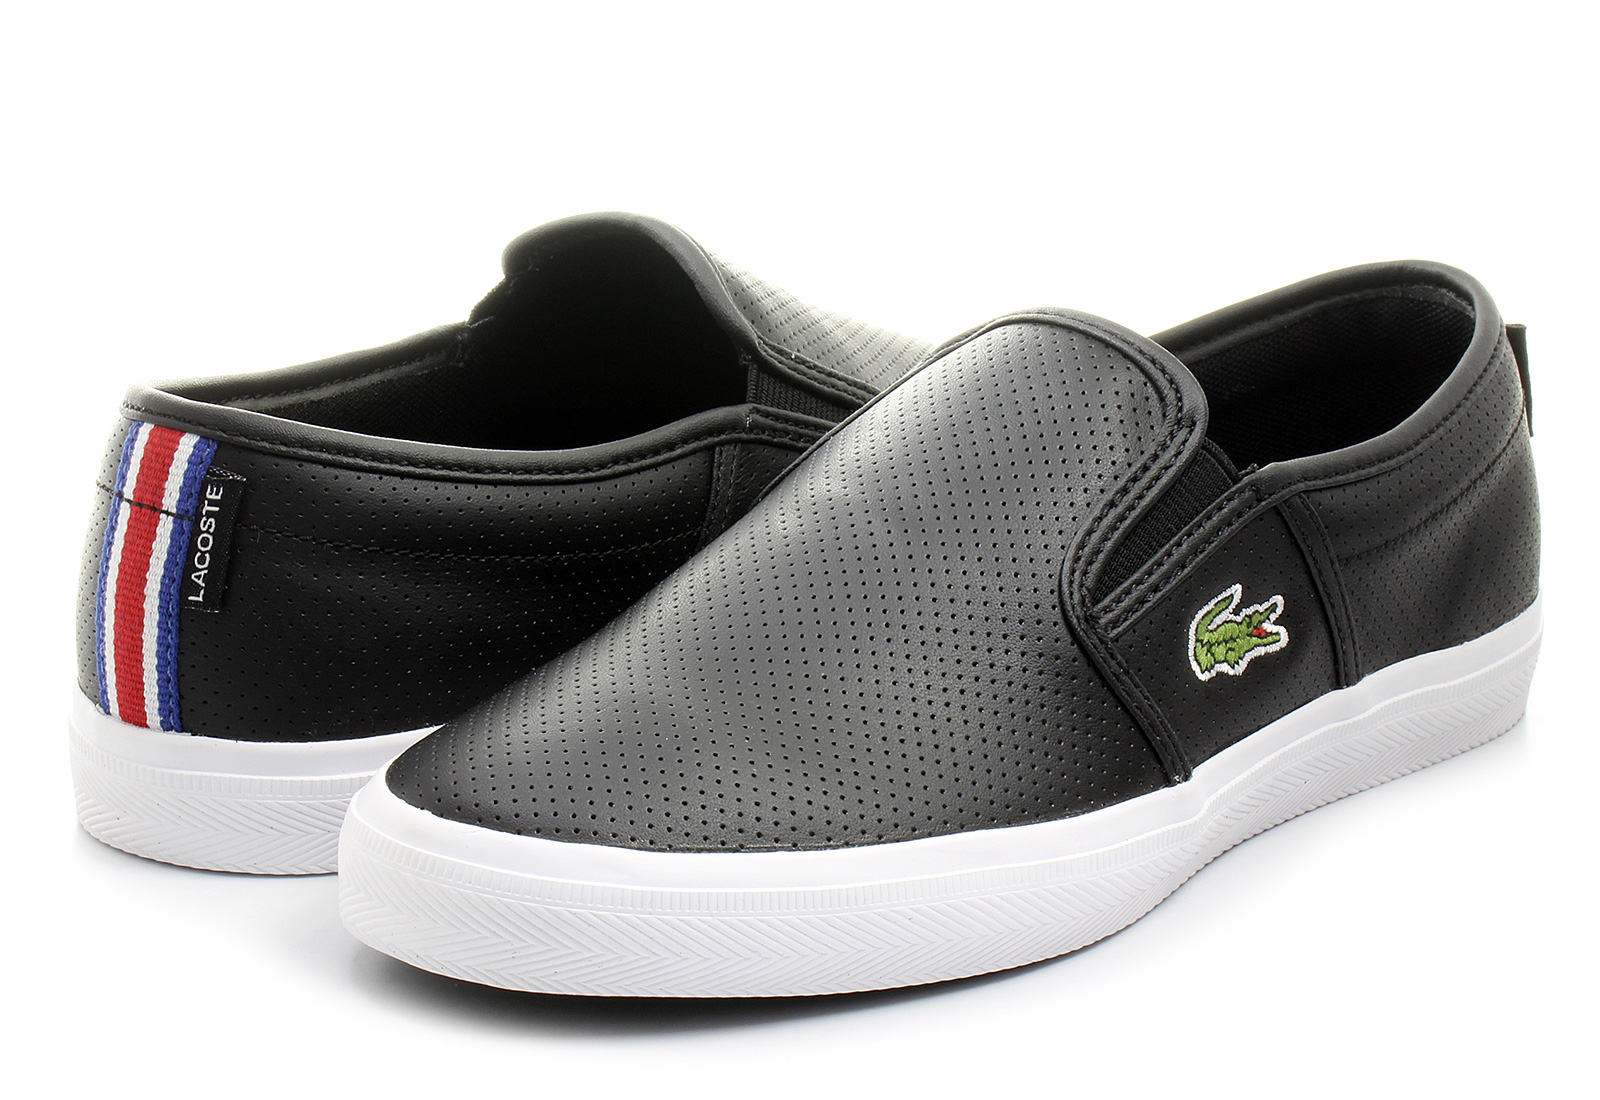 Lacoste Shoes - Gazon Sport - 153spm0012-02h